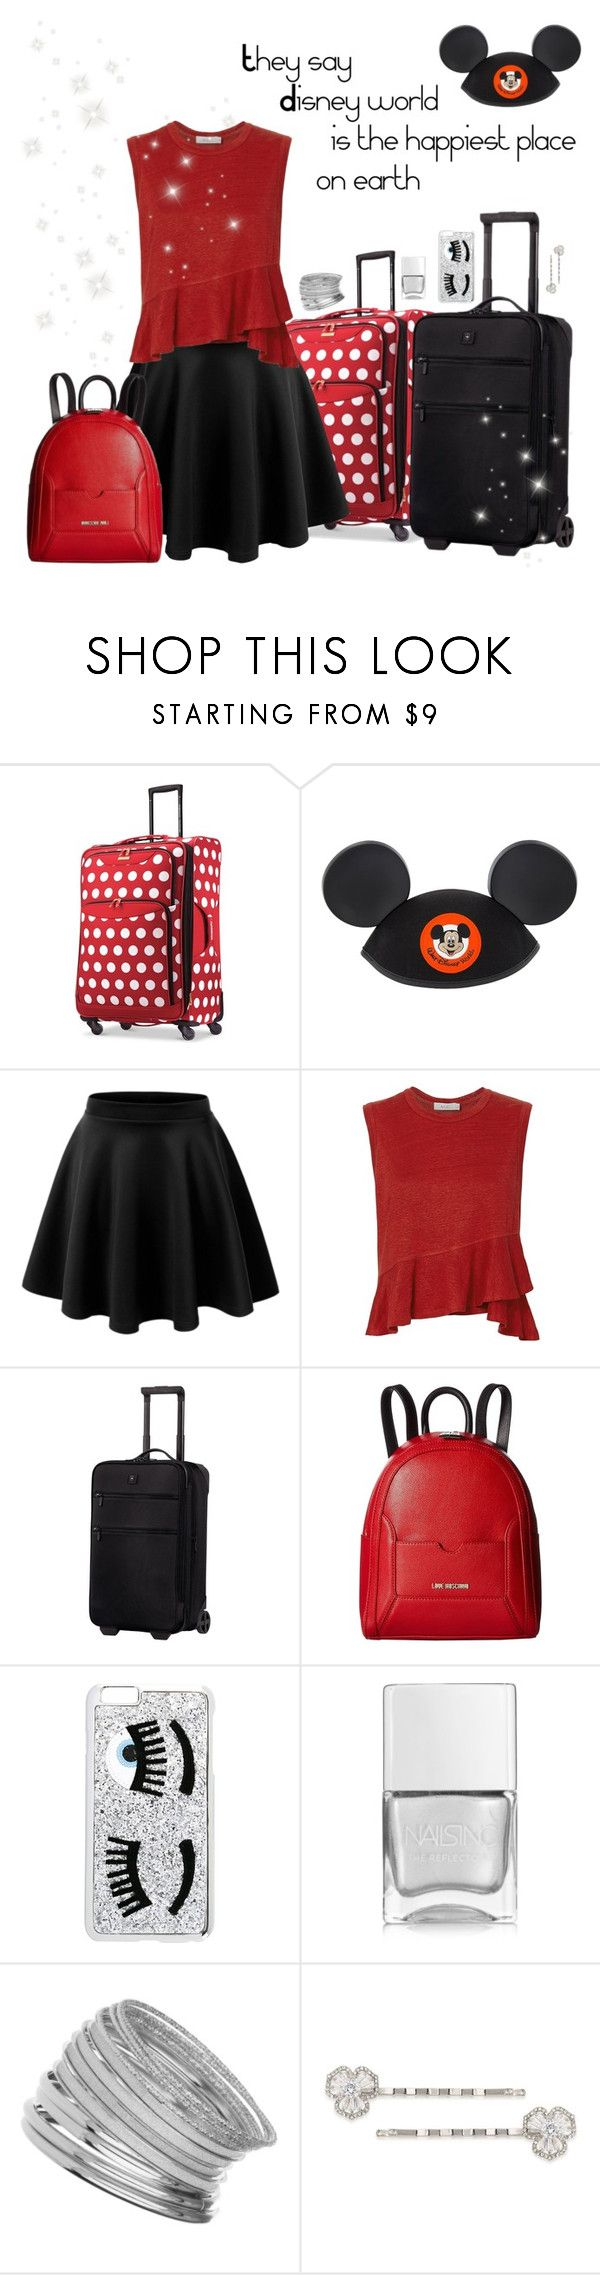 """""""Disney world"""" by dory-speaks-whale ❤ liked on Polyvore featuring Disney, A.L.C., Victorinox Swiss Army, Love Moschino, Chiara Ferragni, Nails Inc., Miss Selfridge and Carolee"""